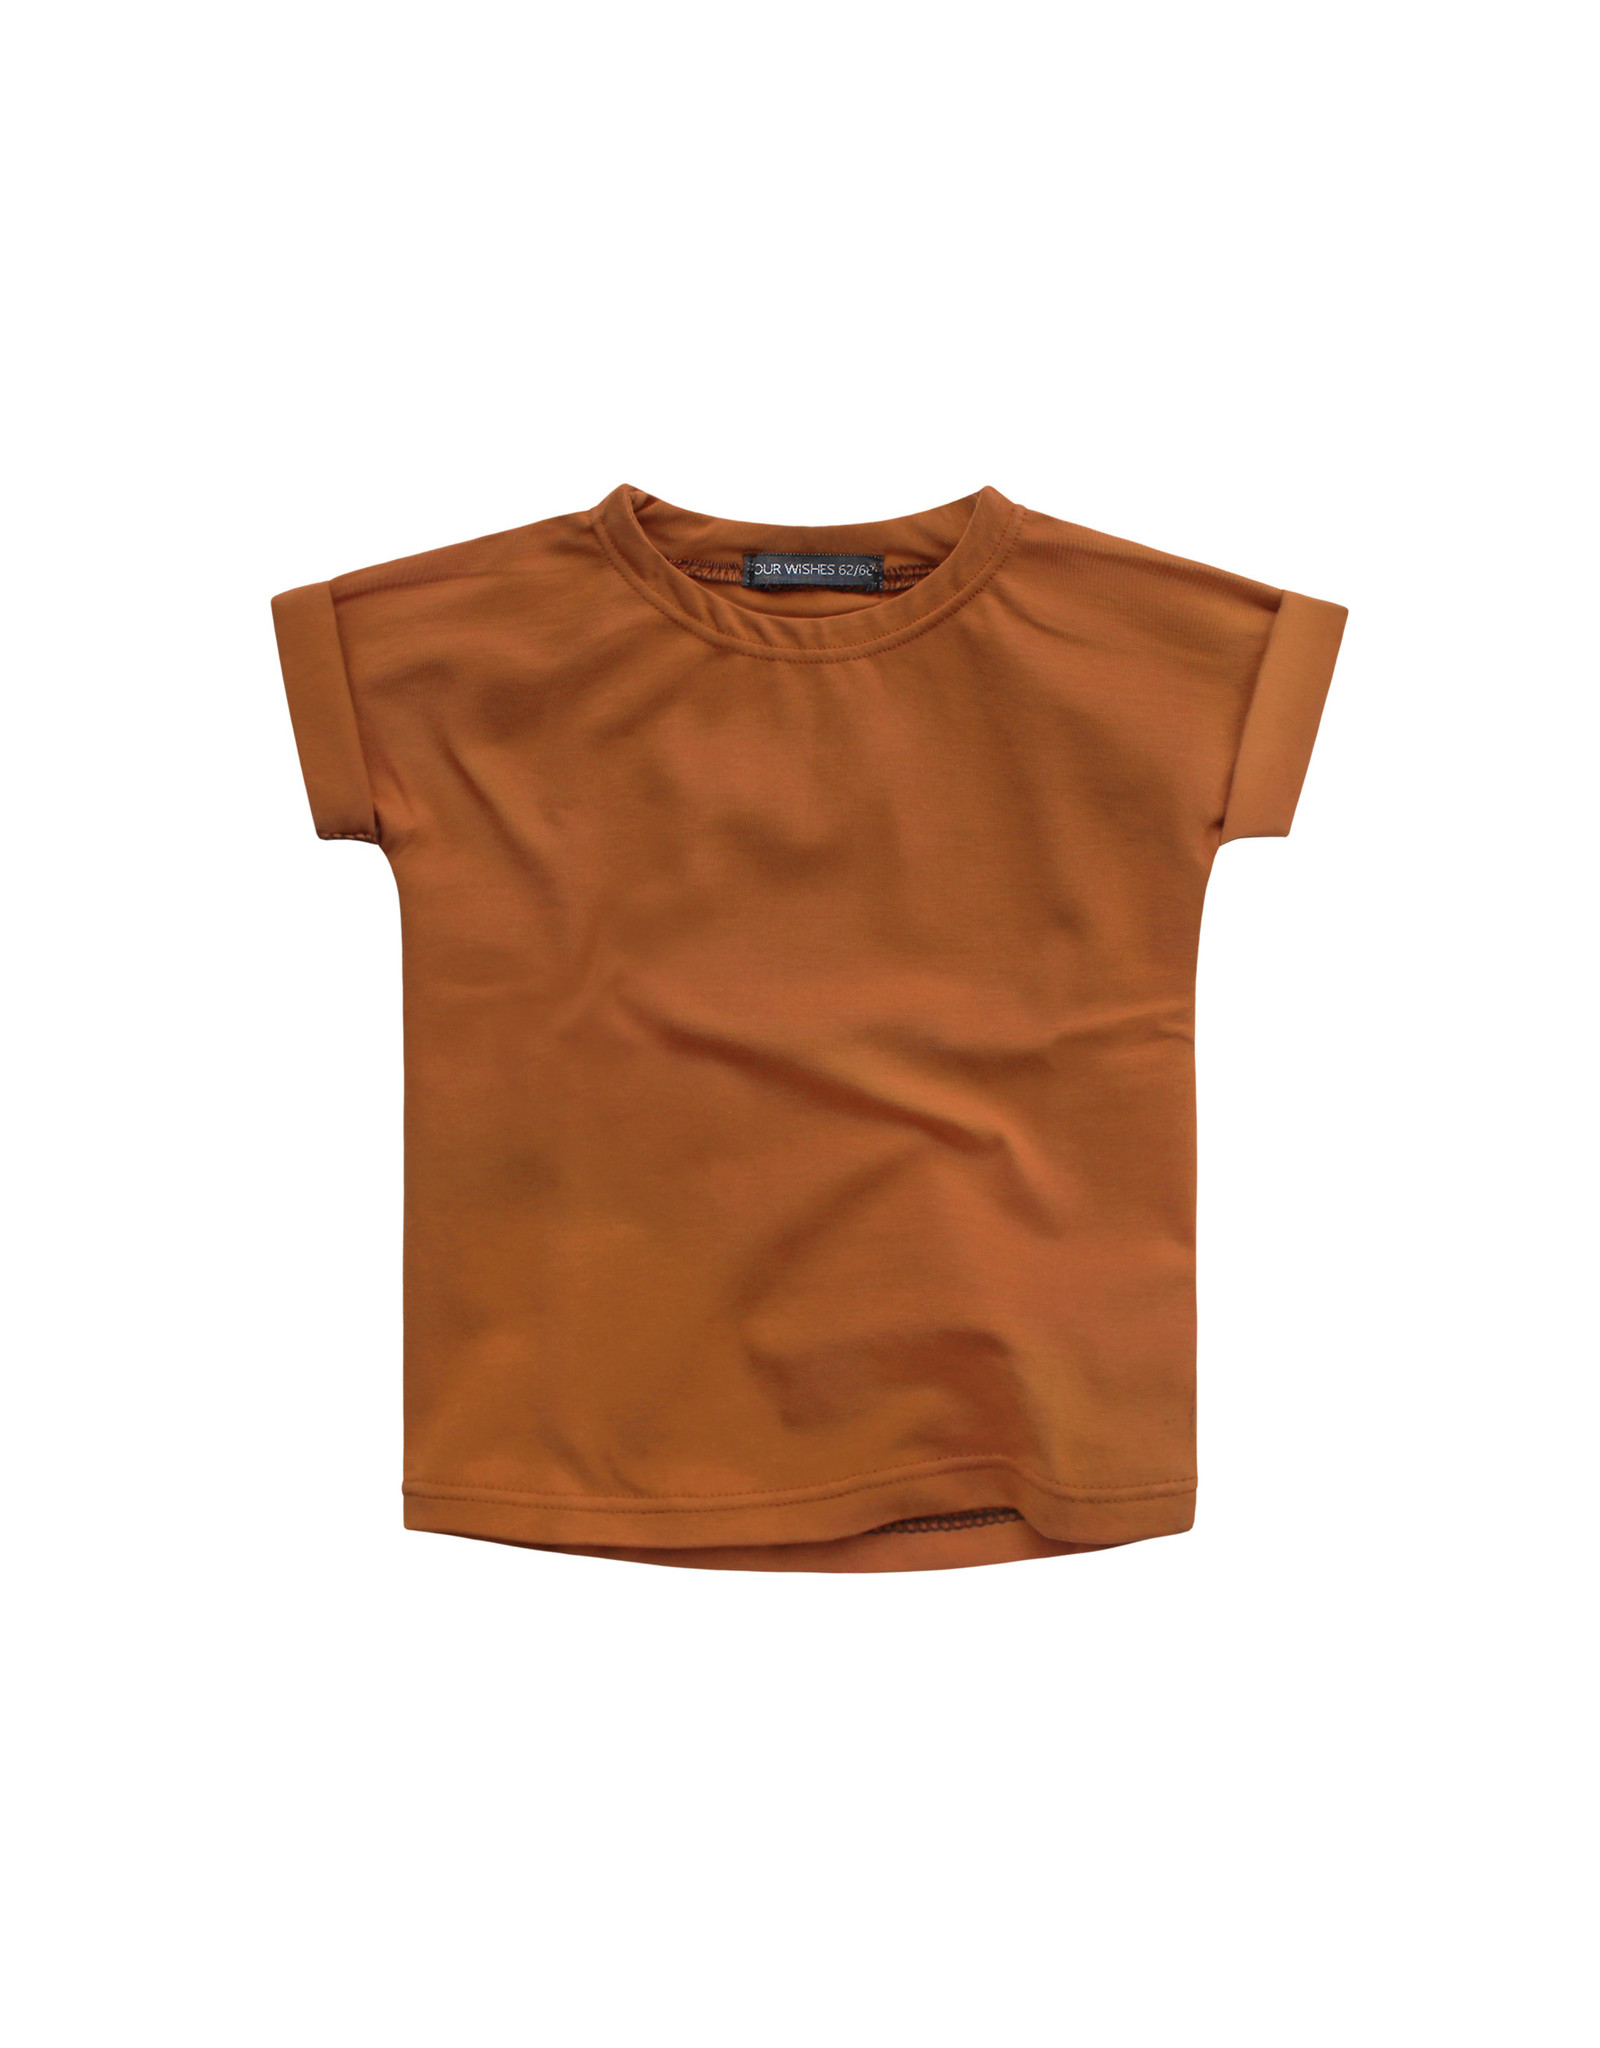 Your Wishes Cognac Jersey Boxy Tee